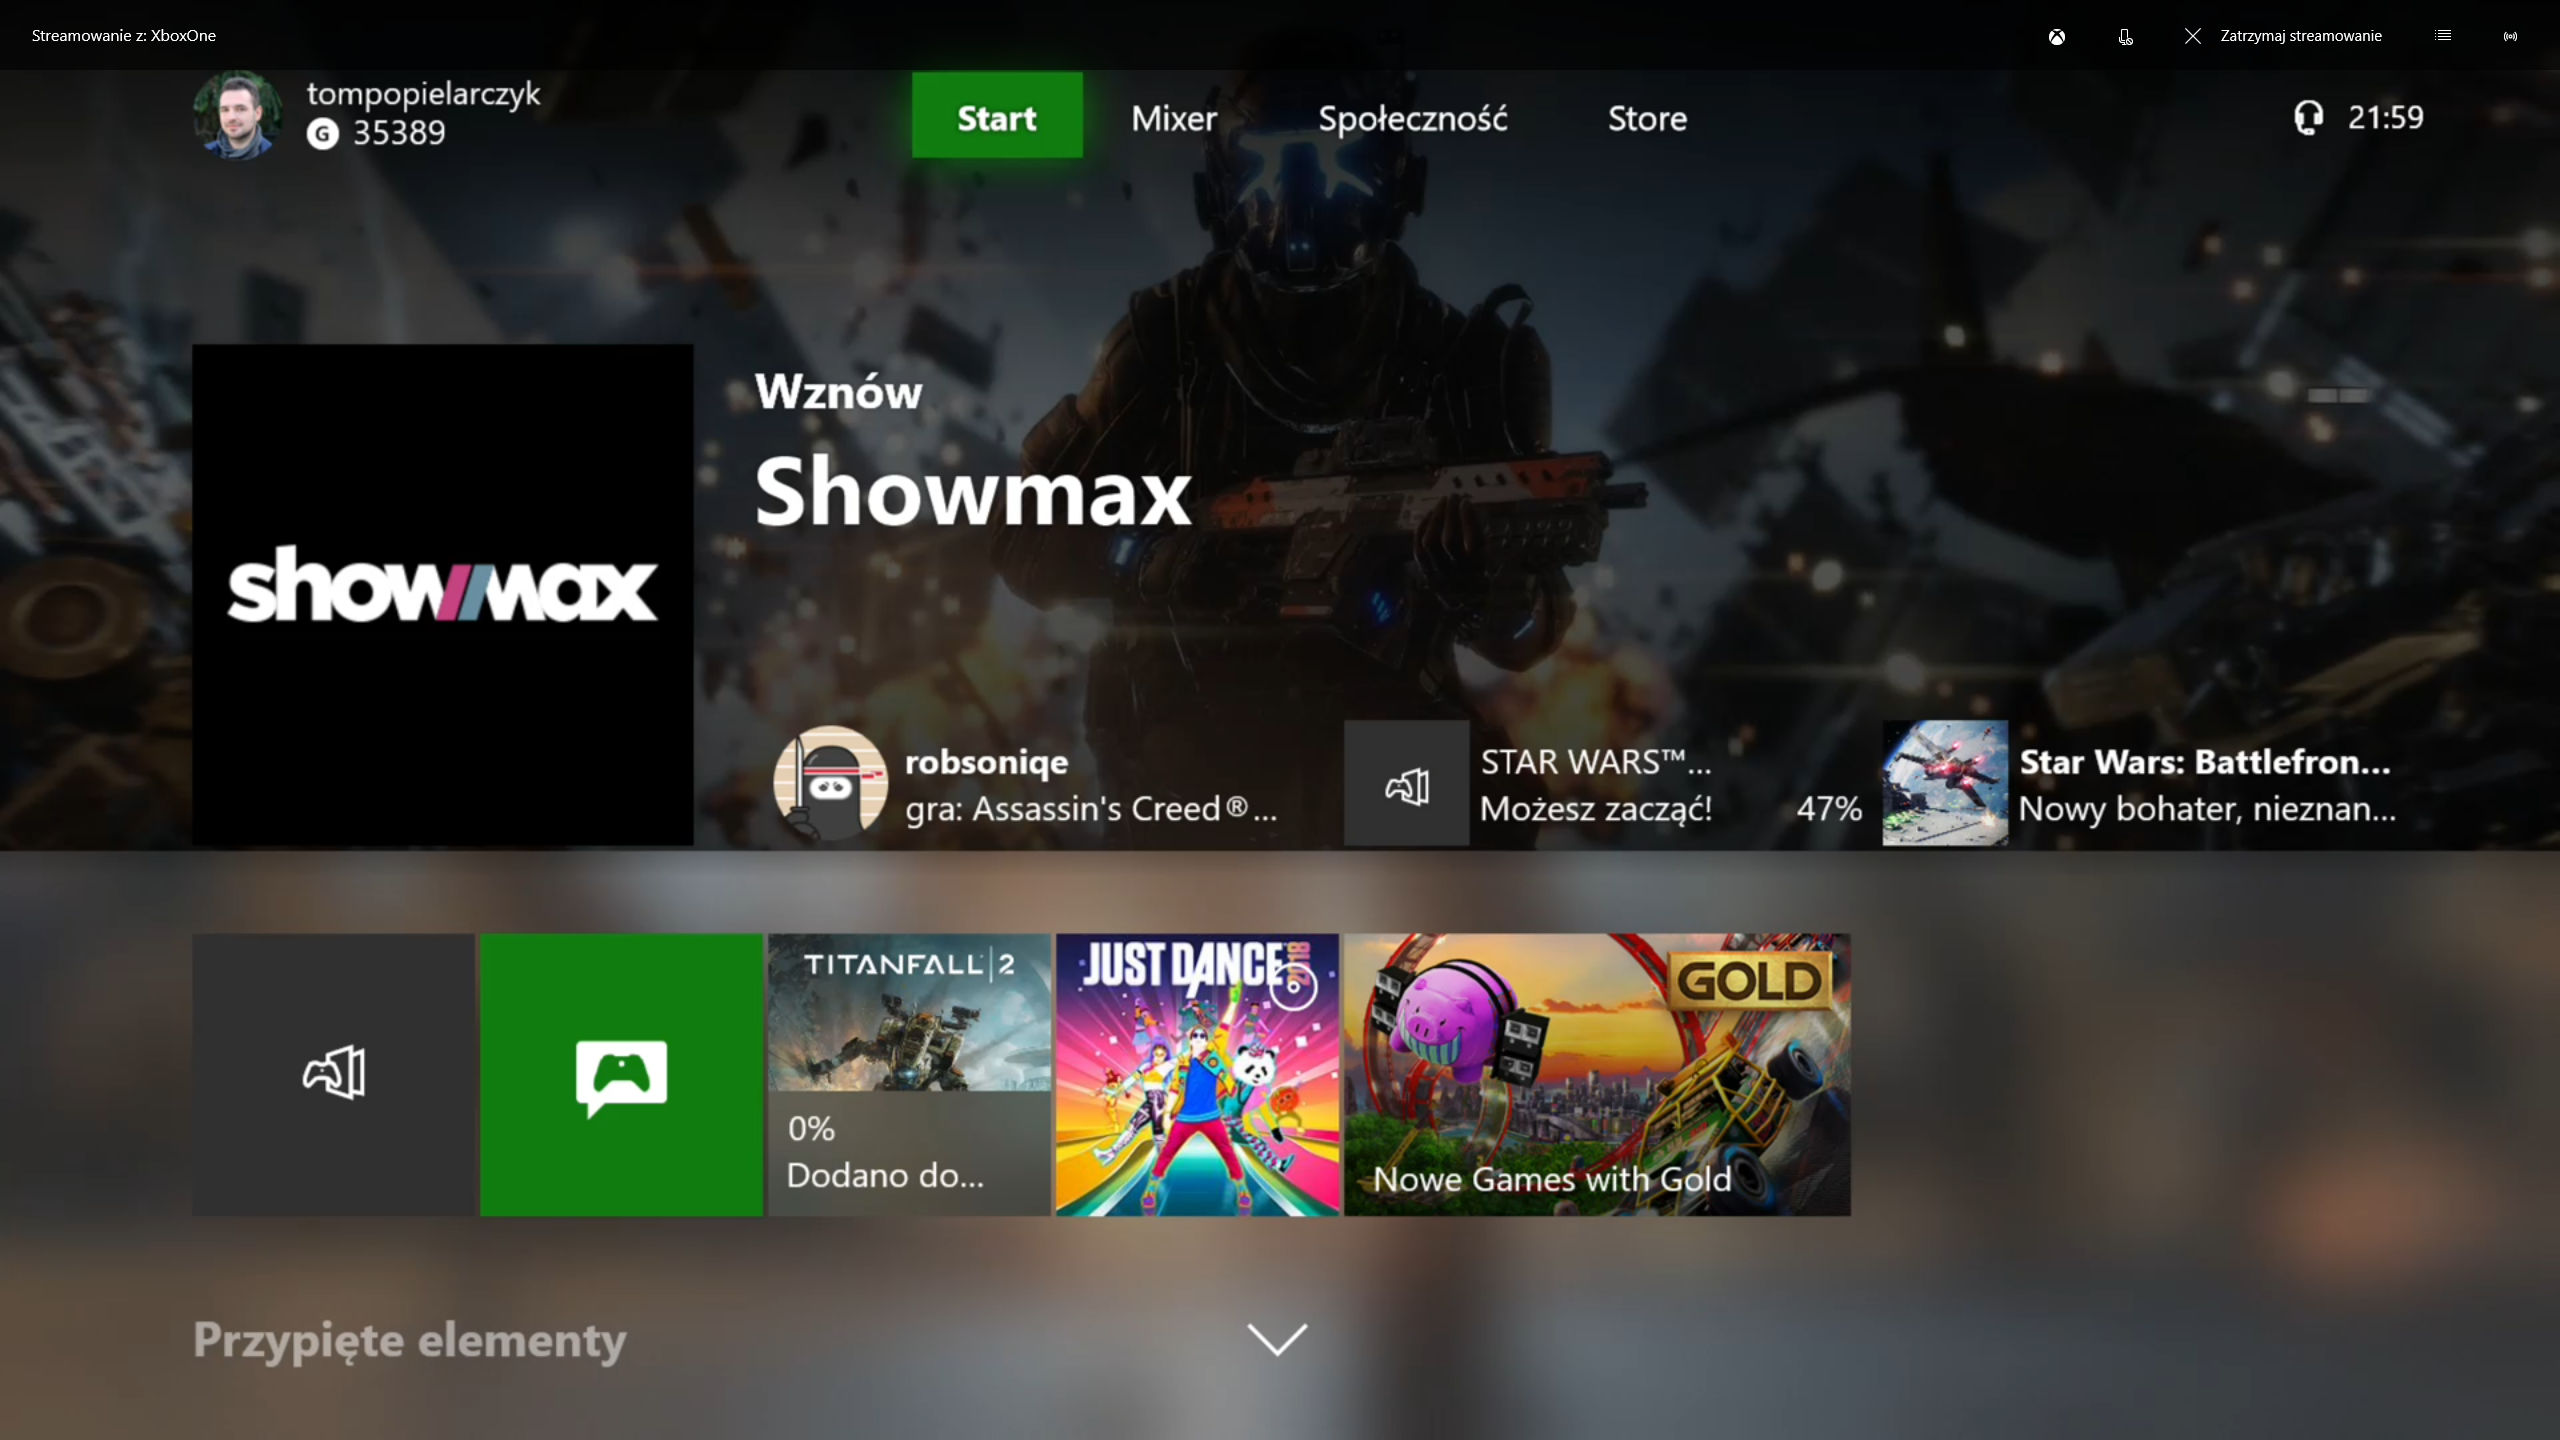 Xbox One X home interface